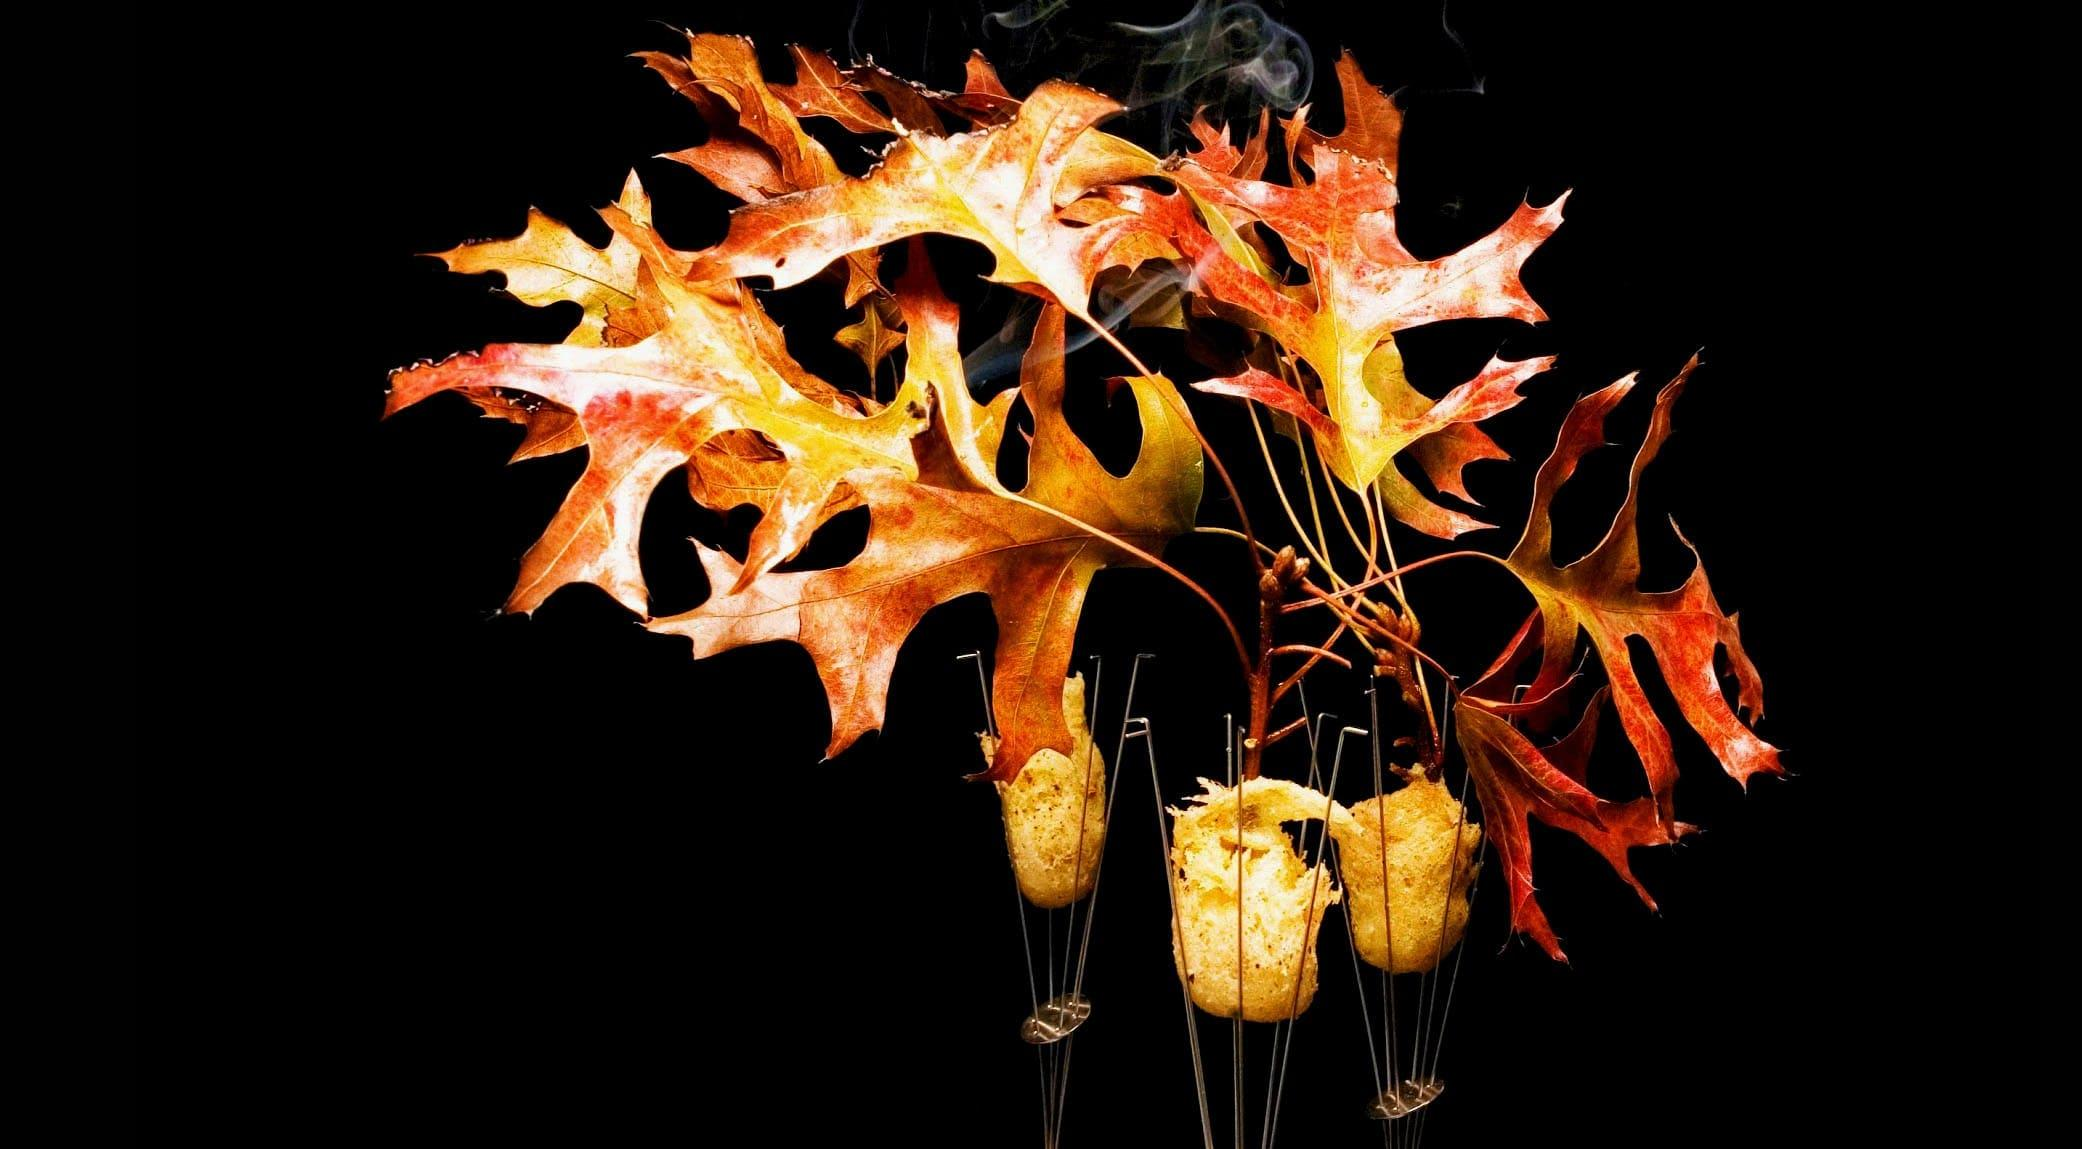 original_009-alinea-finedininglovers.jpg